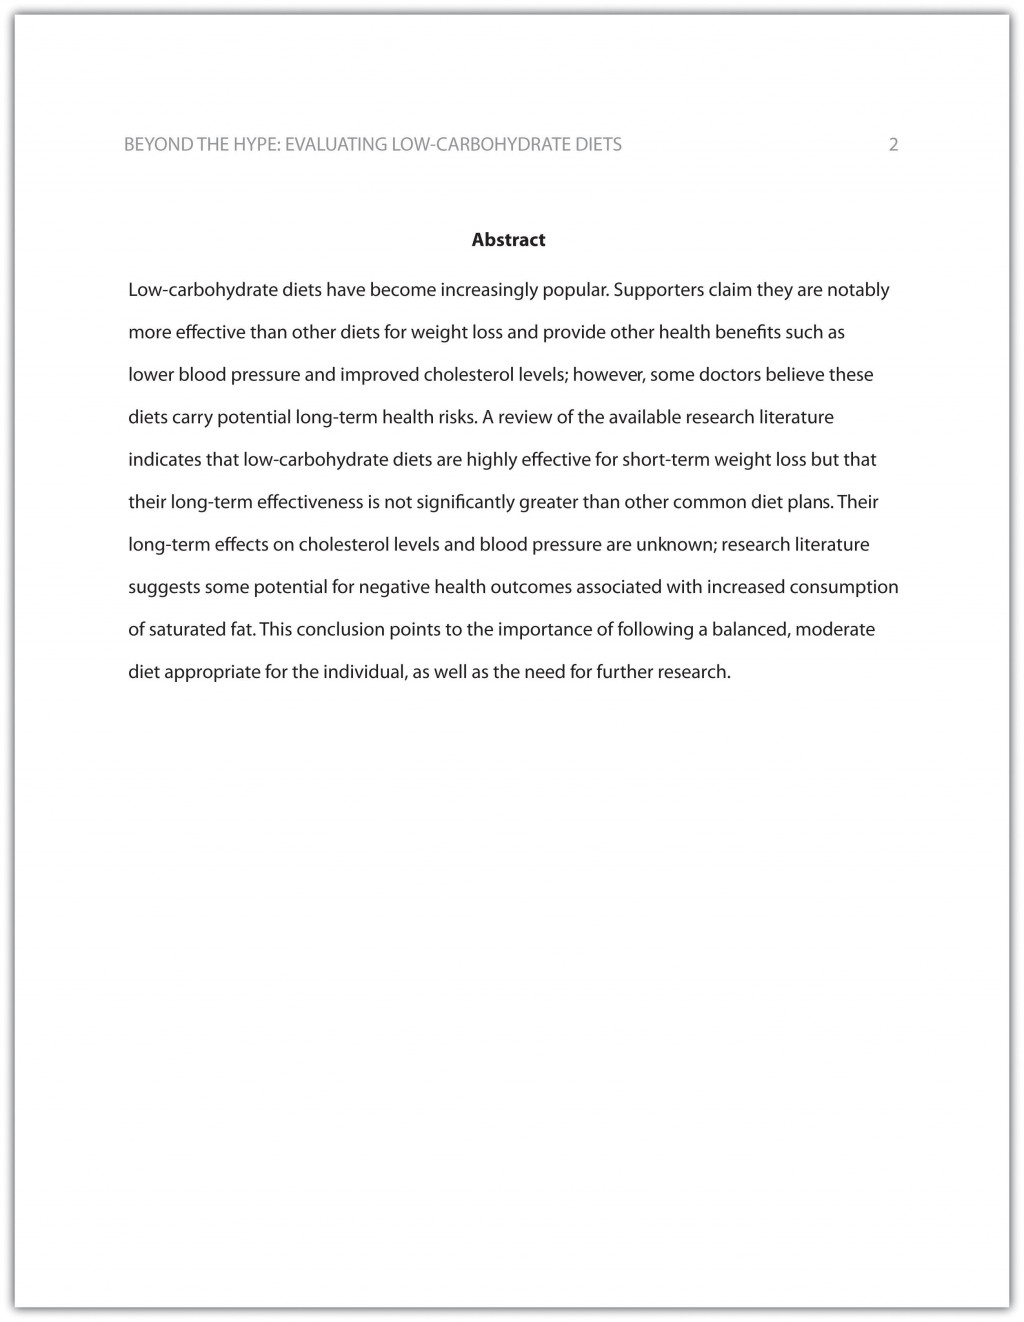 009 Research Paper Mla Formatting Wondrous Instructions Large